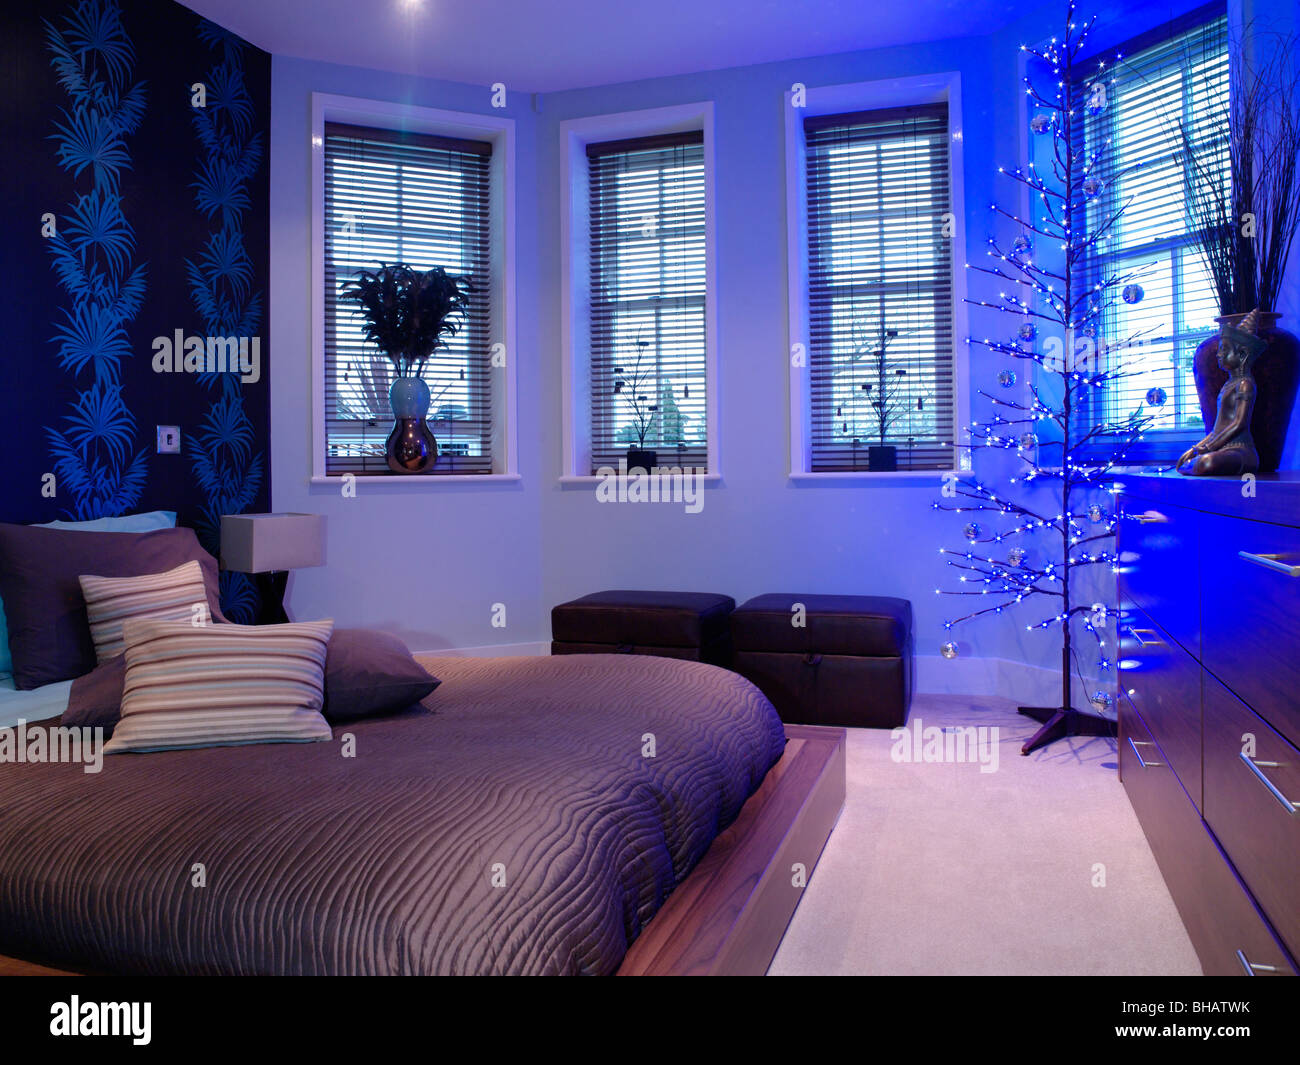 Bing Weihnachtsbilder.Mantlepieces Stock Photos Mantlepieces Stock Images Alamy